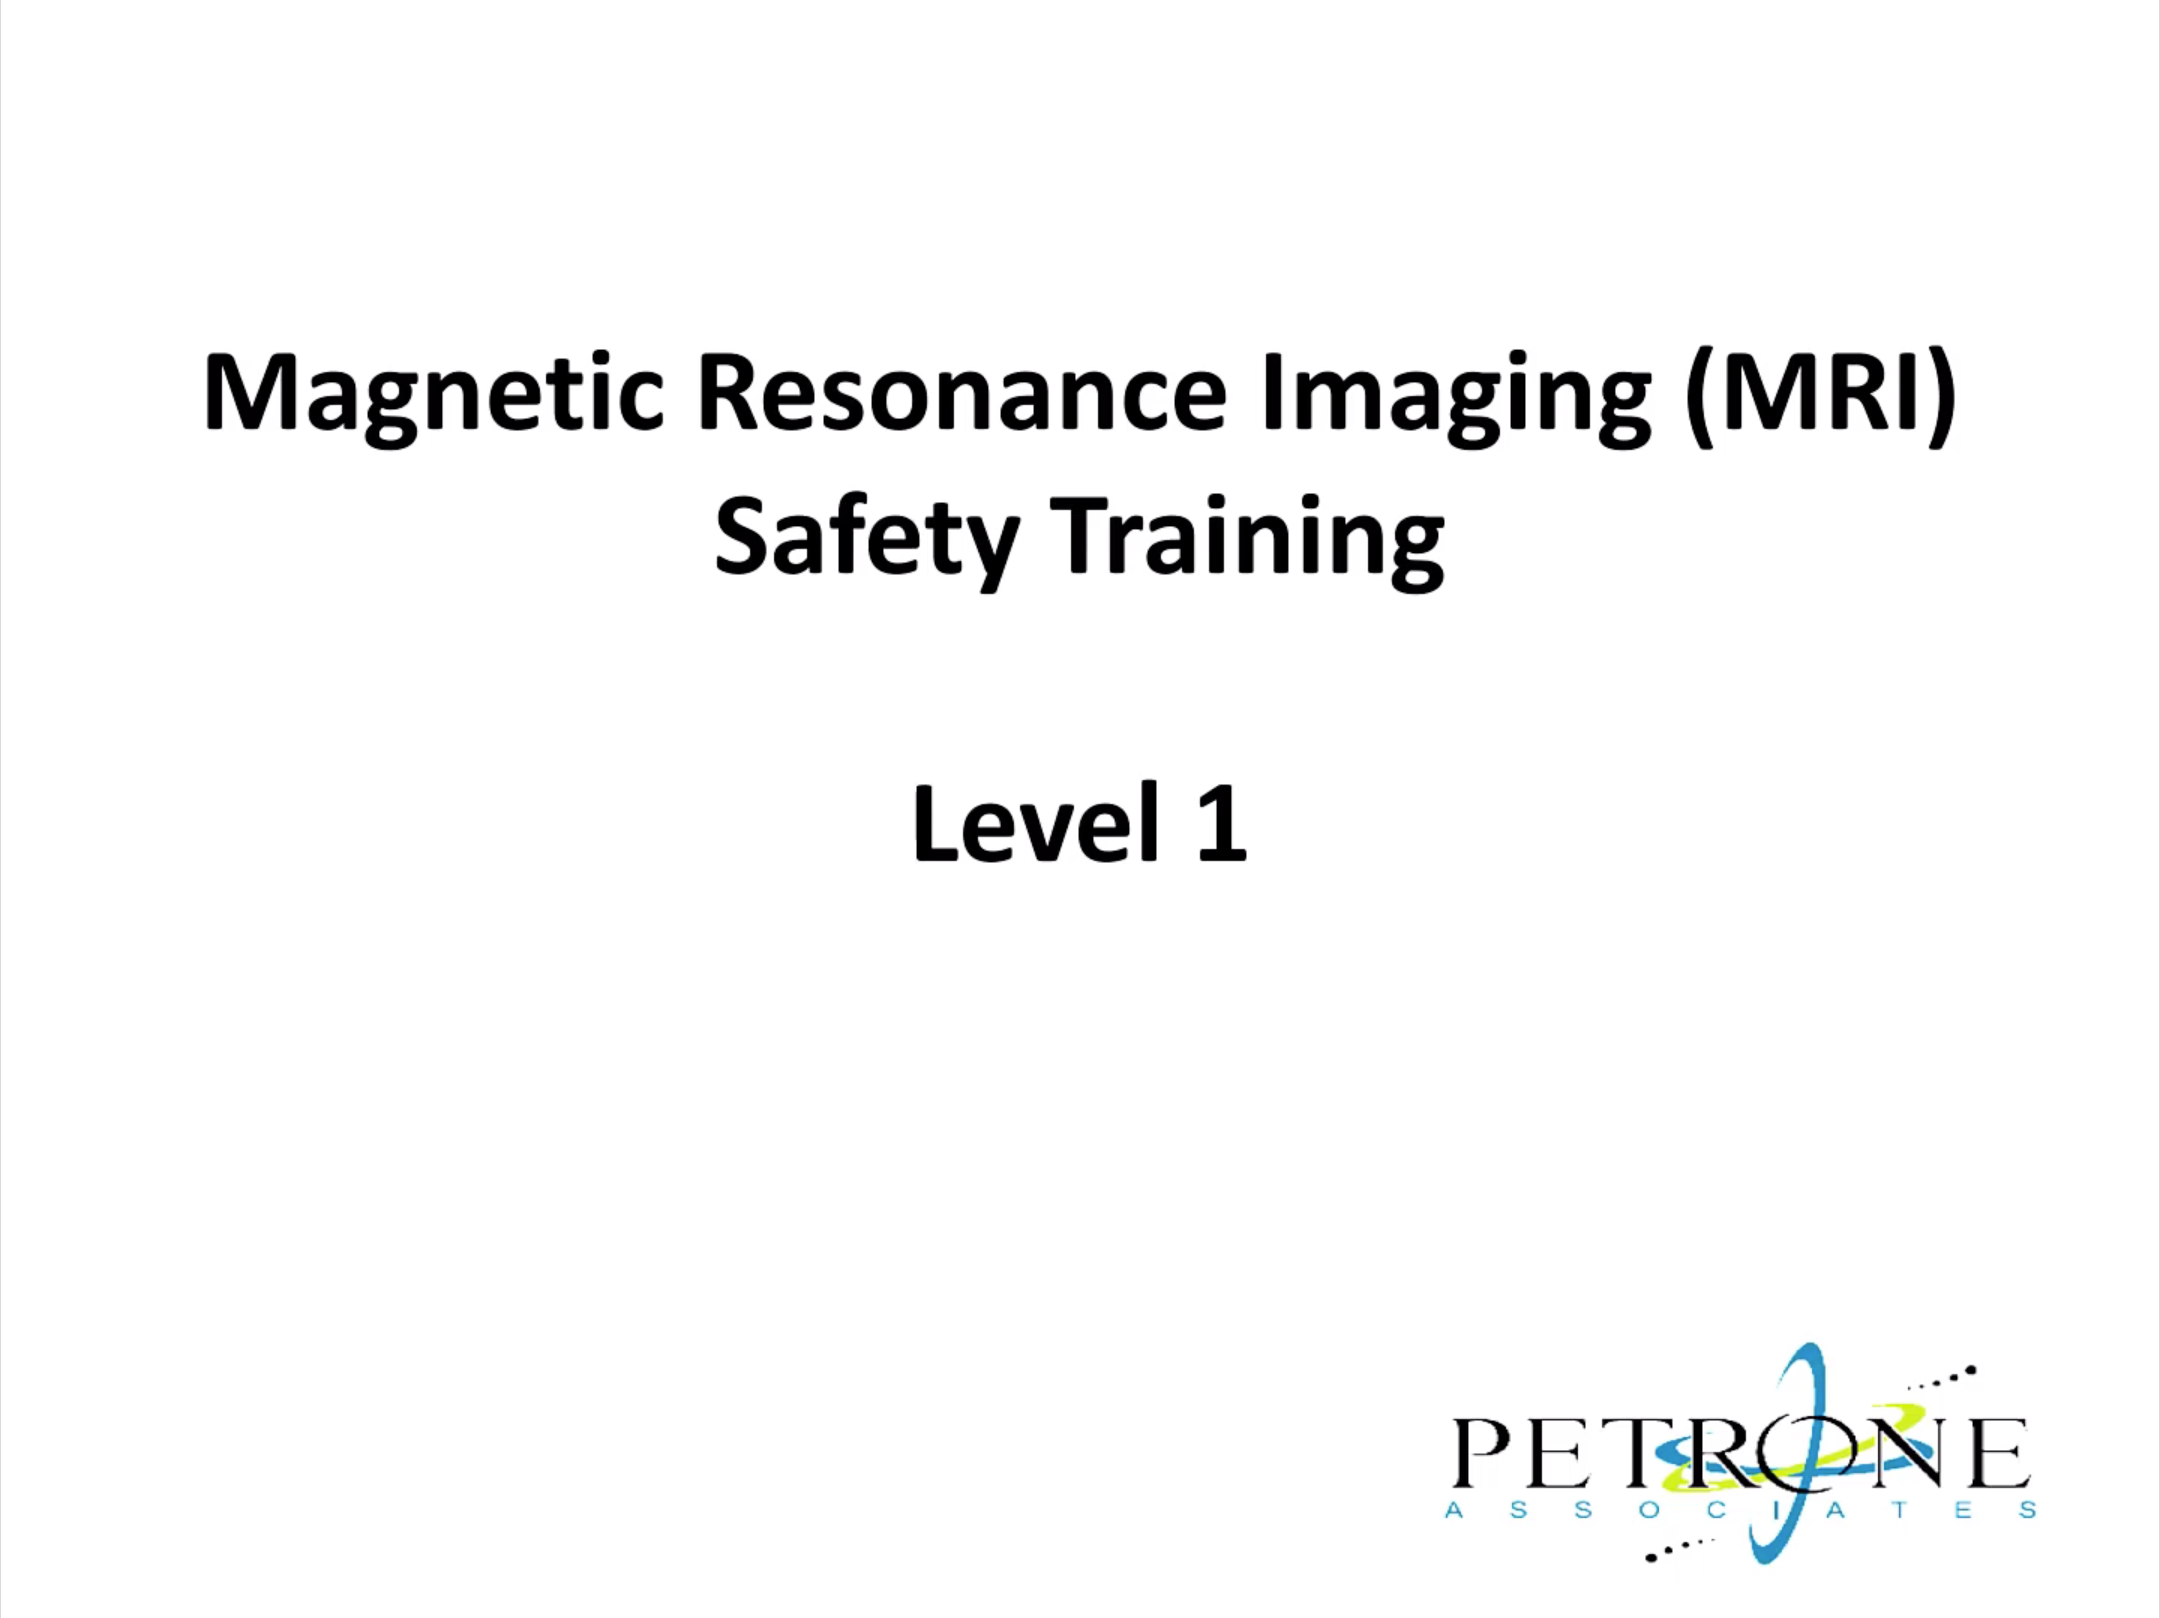 course_image